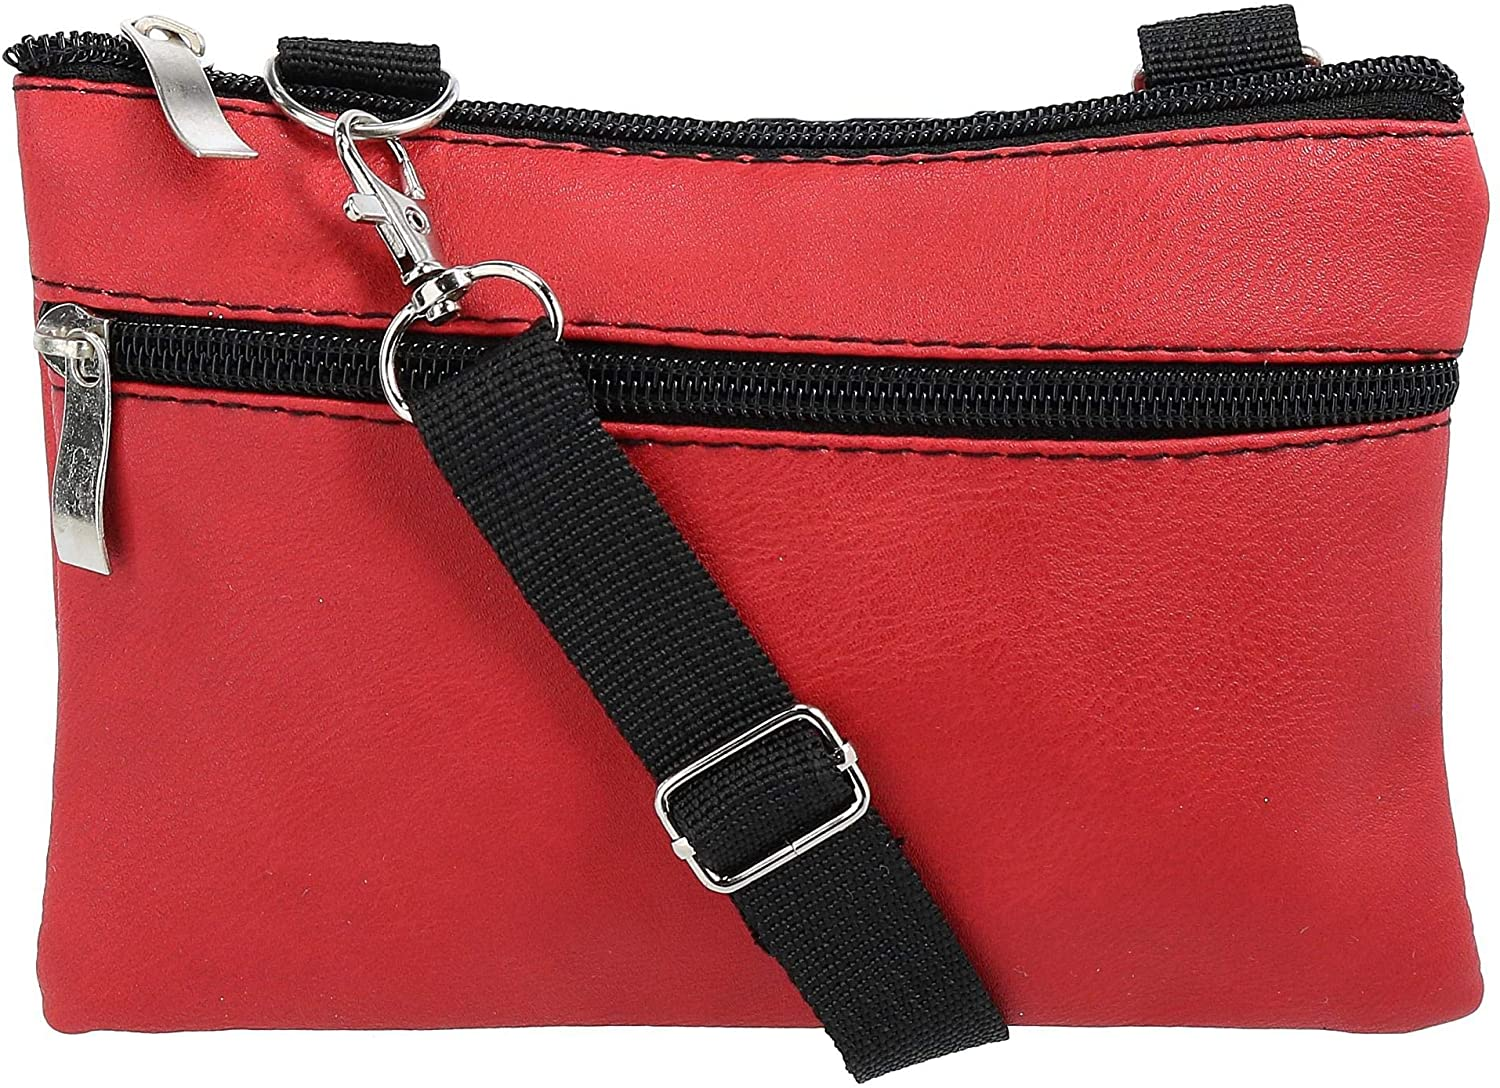 2 Moda Convertible Faux Leather Fashion Waist Pack Crossbody Bag, Red